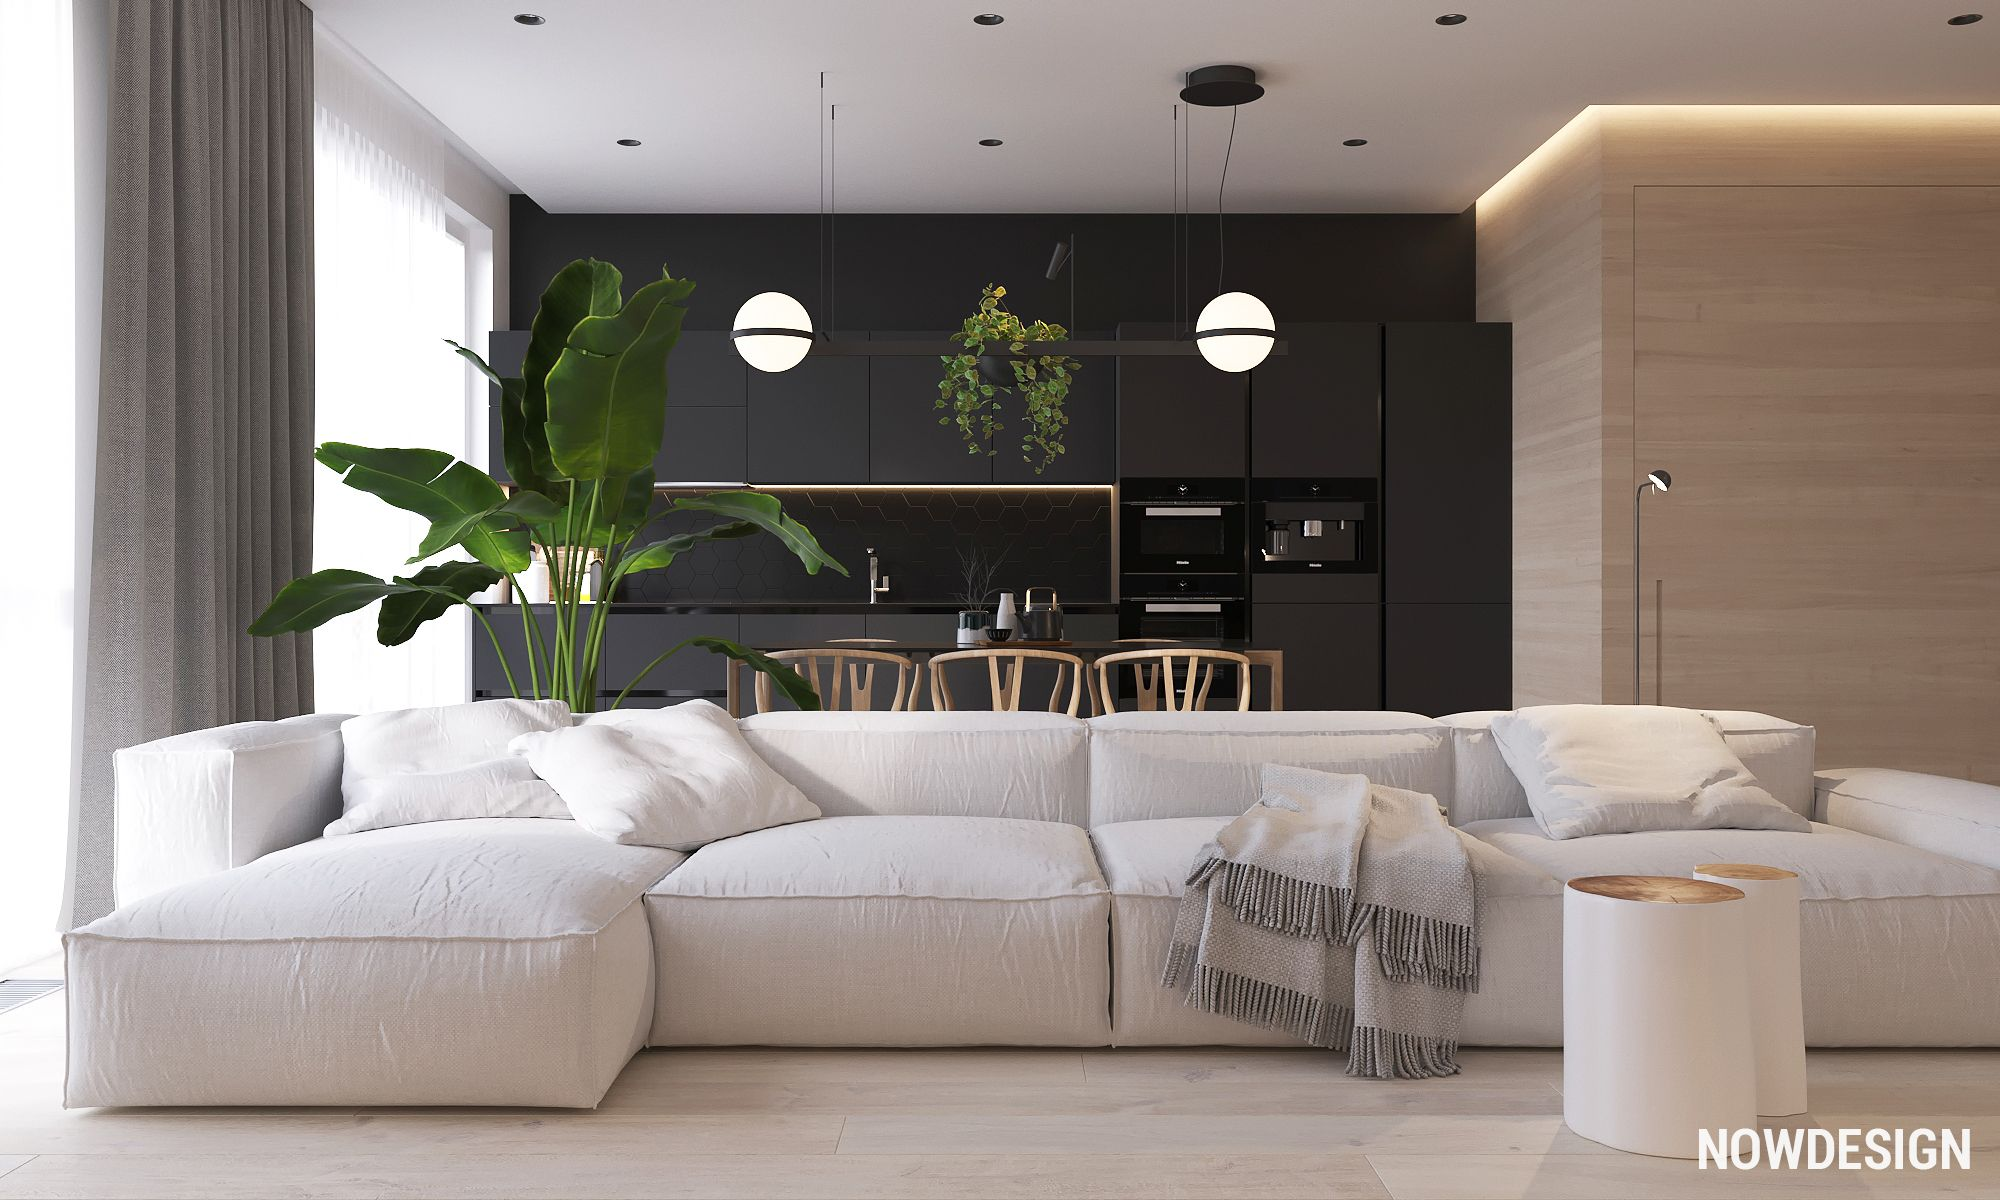 bedroom plant design ideas interior furniture | My new project. Apartament in Moscow. | ID Design Appart ...